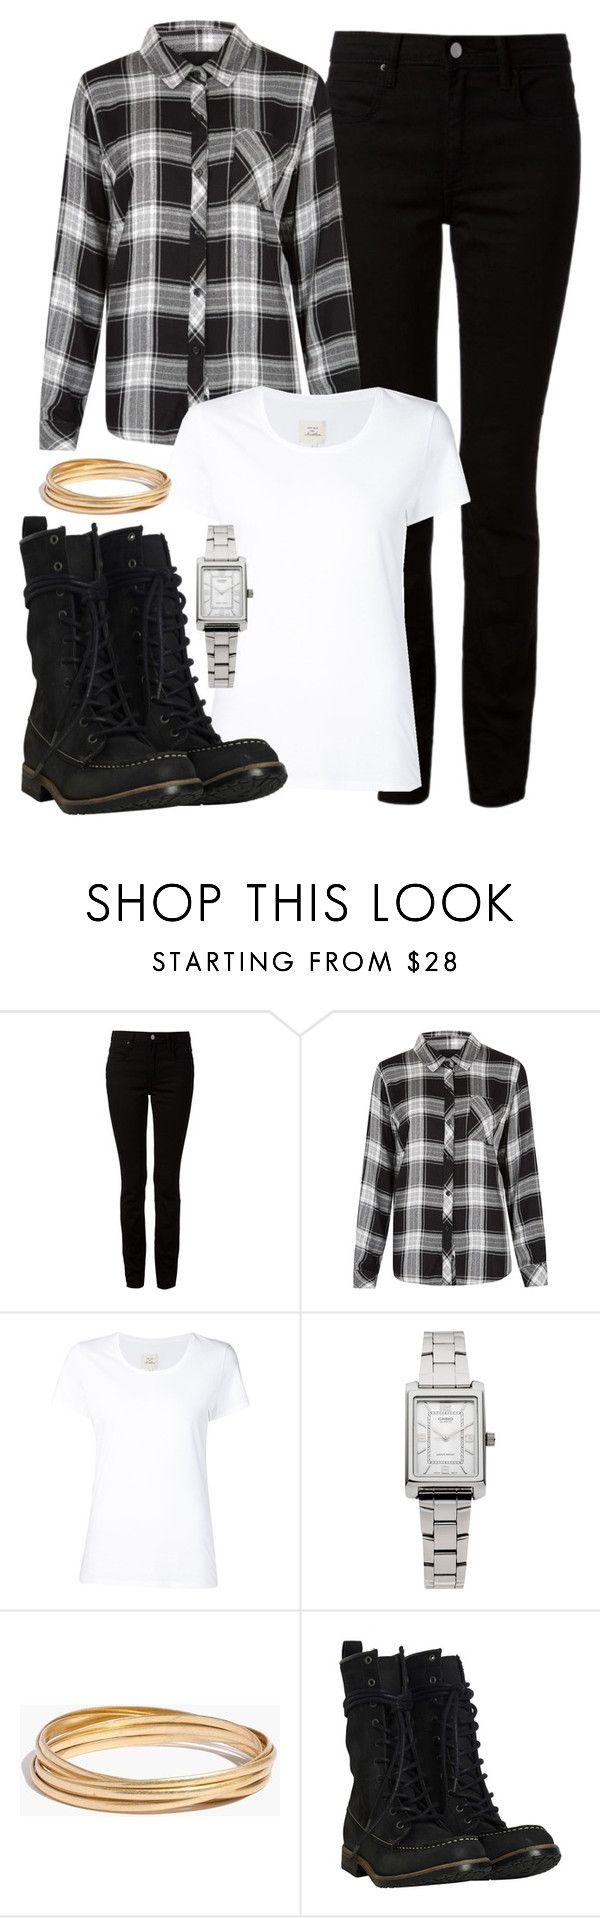 """""""Set 16"""" by bebe6121985 on Polyvore featuring moda, Alexander Wang, Rails, Max 'n Chester, Casio, Madewell i AllSaints"""